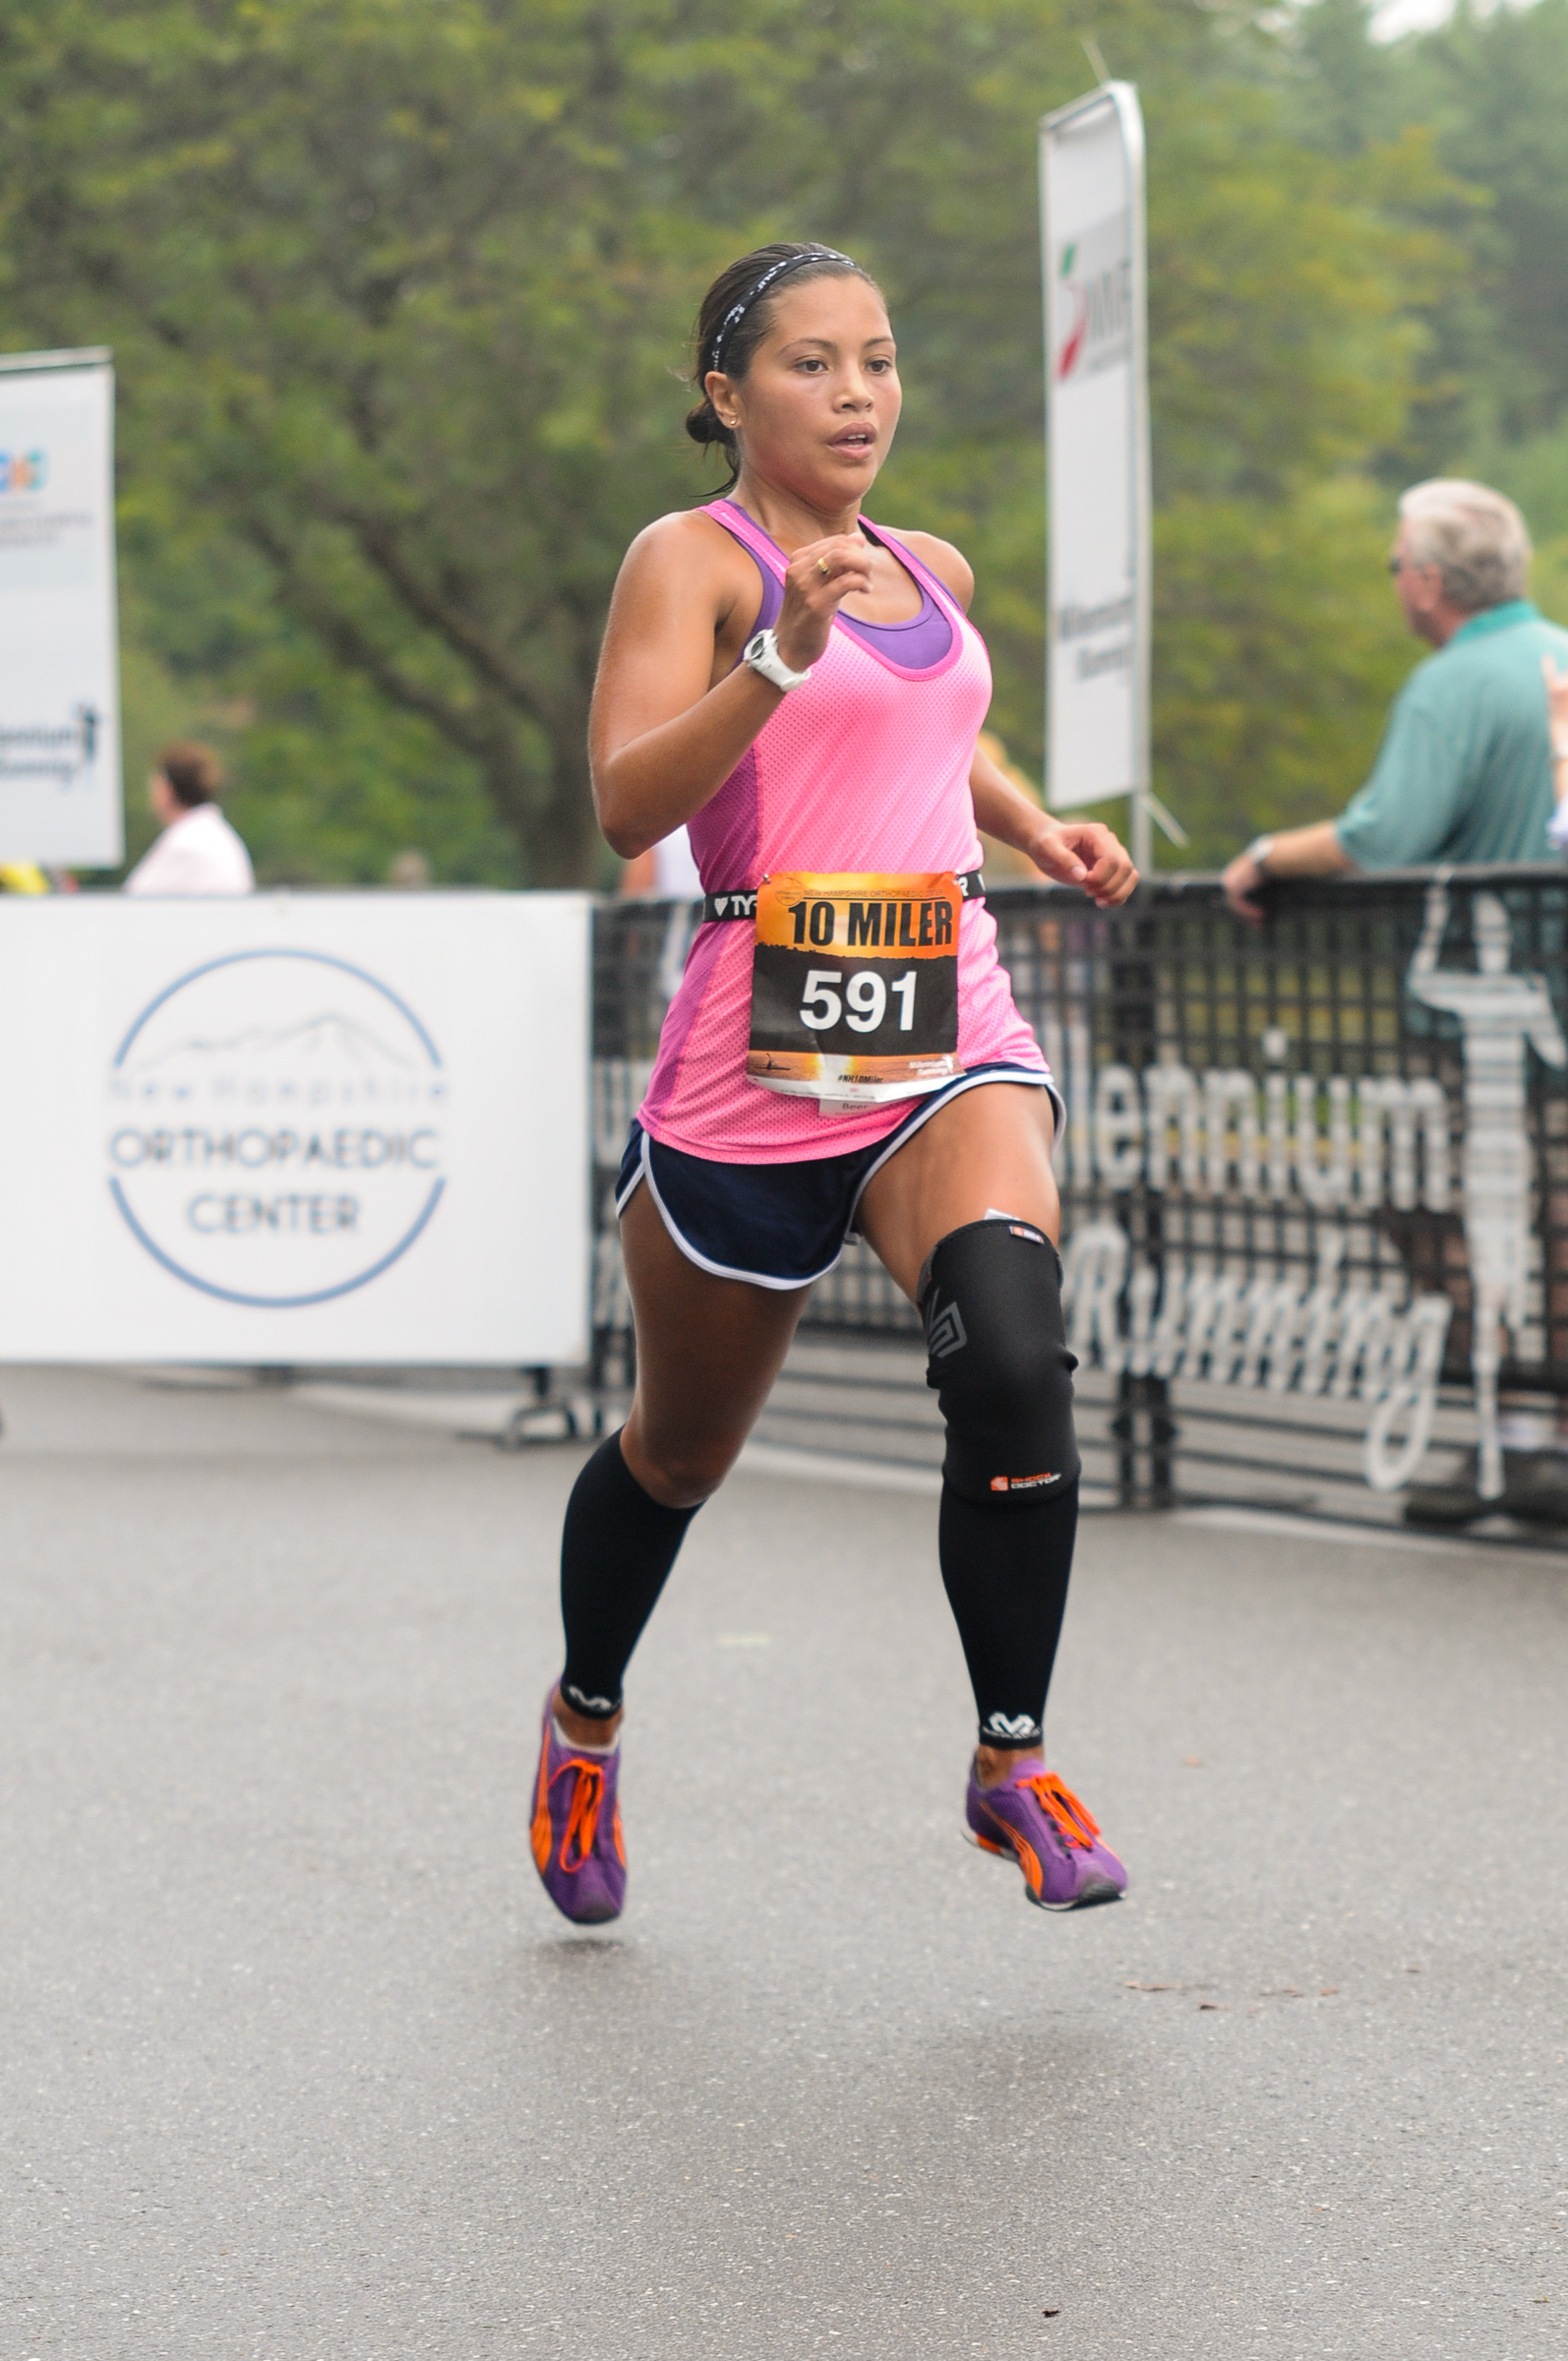 PHOTOS: New Hampshire Orthopaedic Center 10 Miler 2013